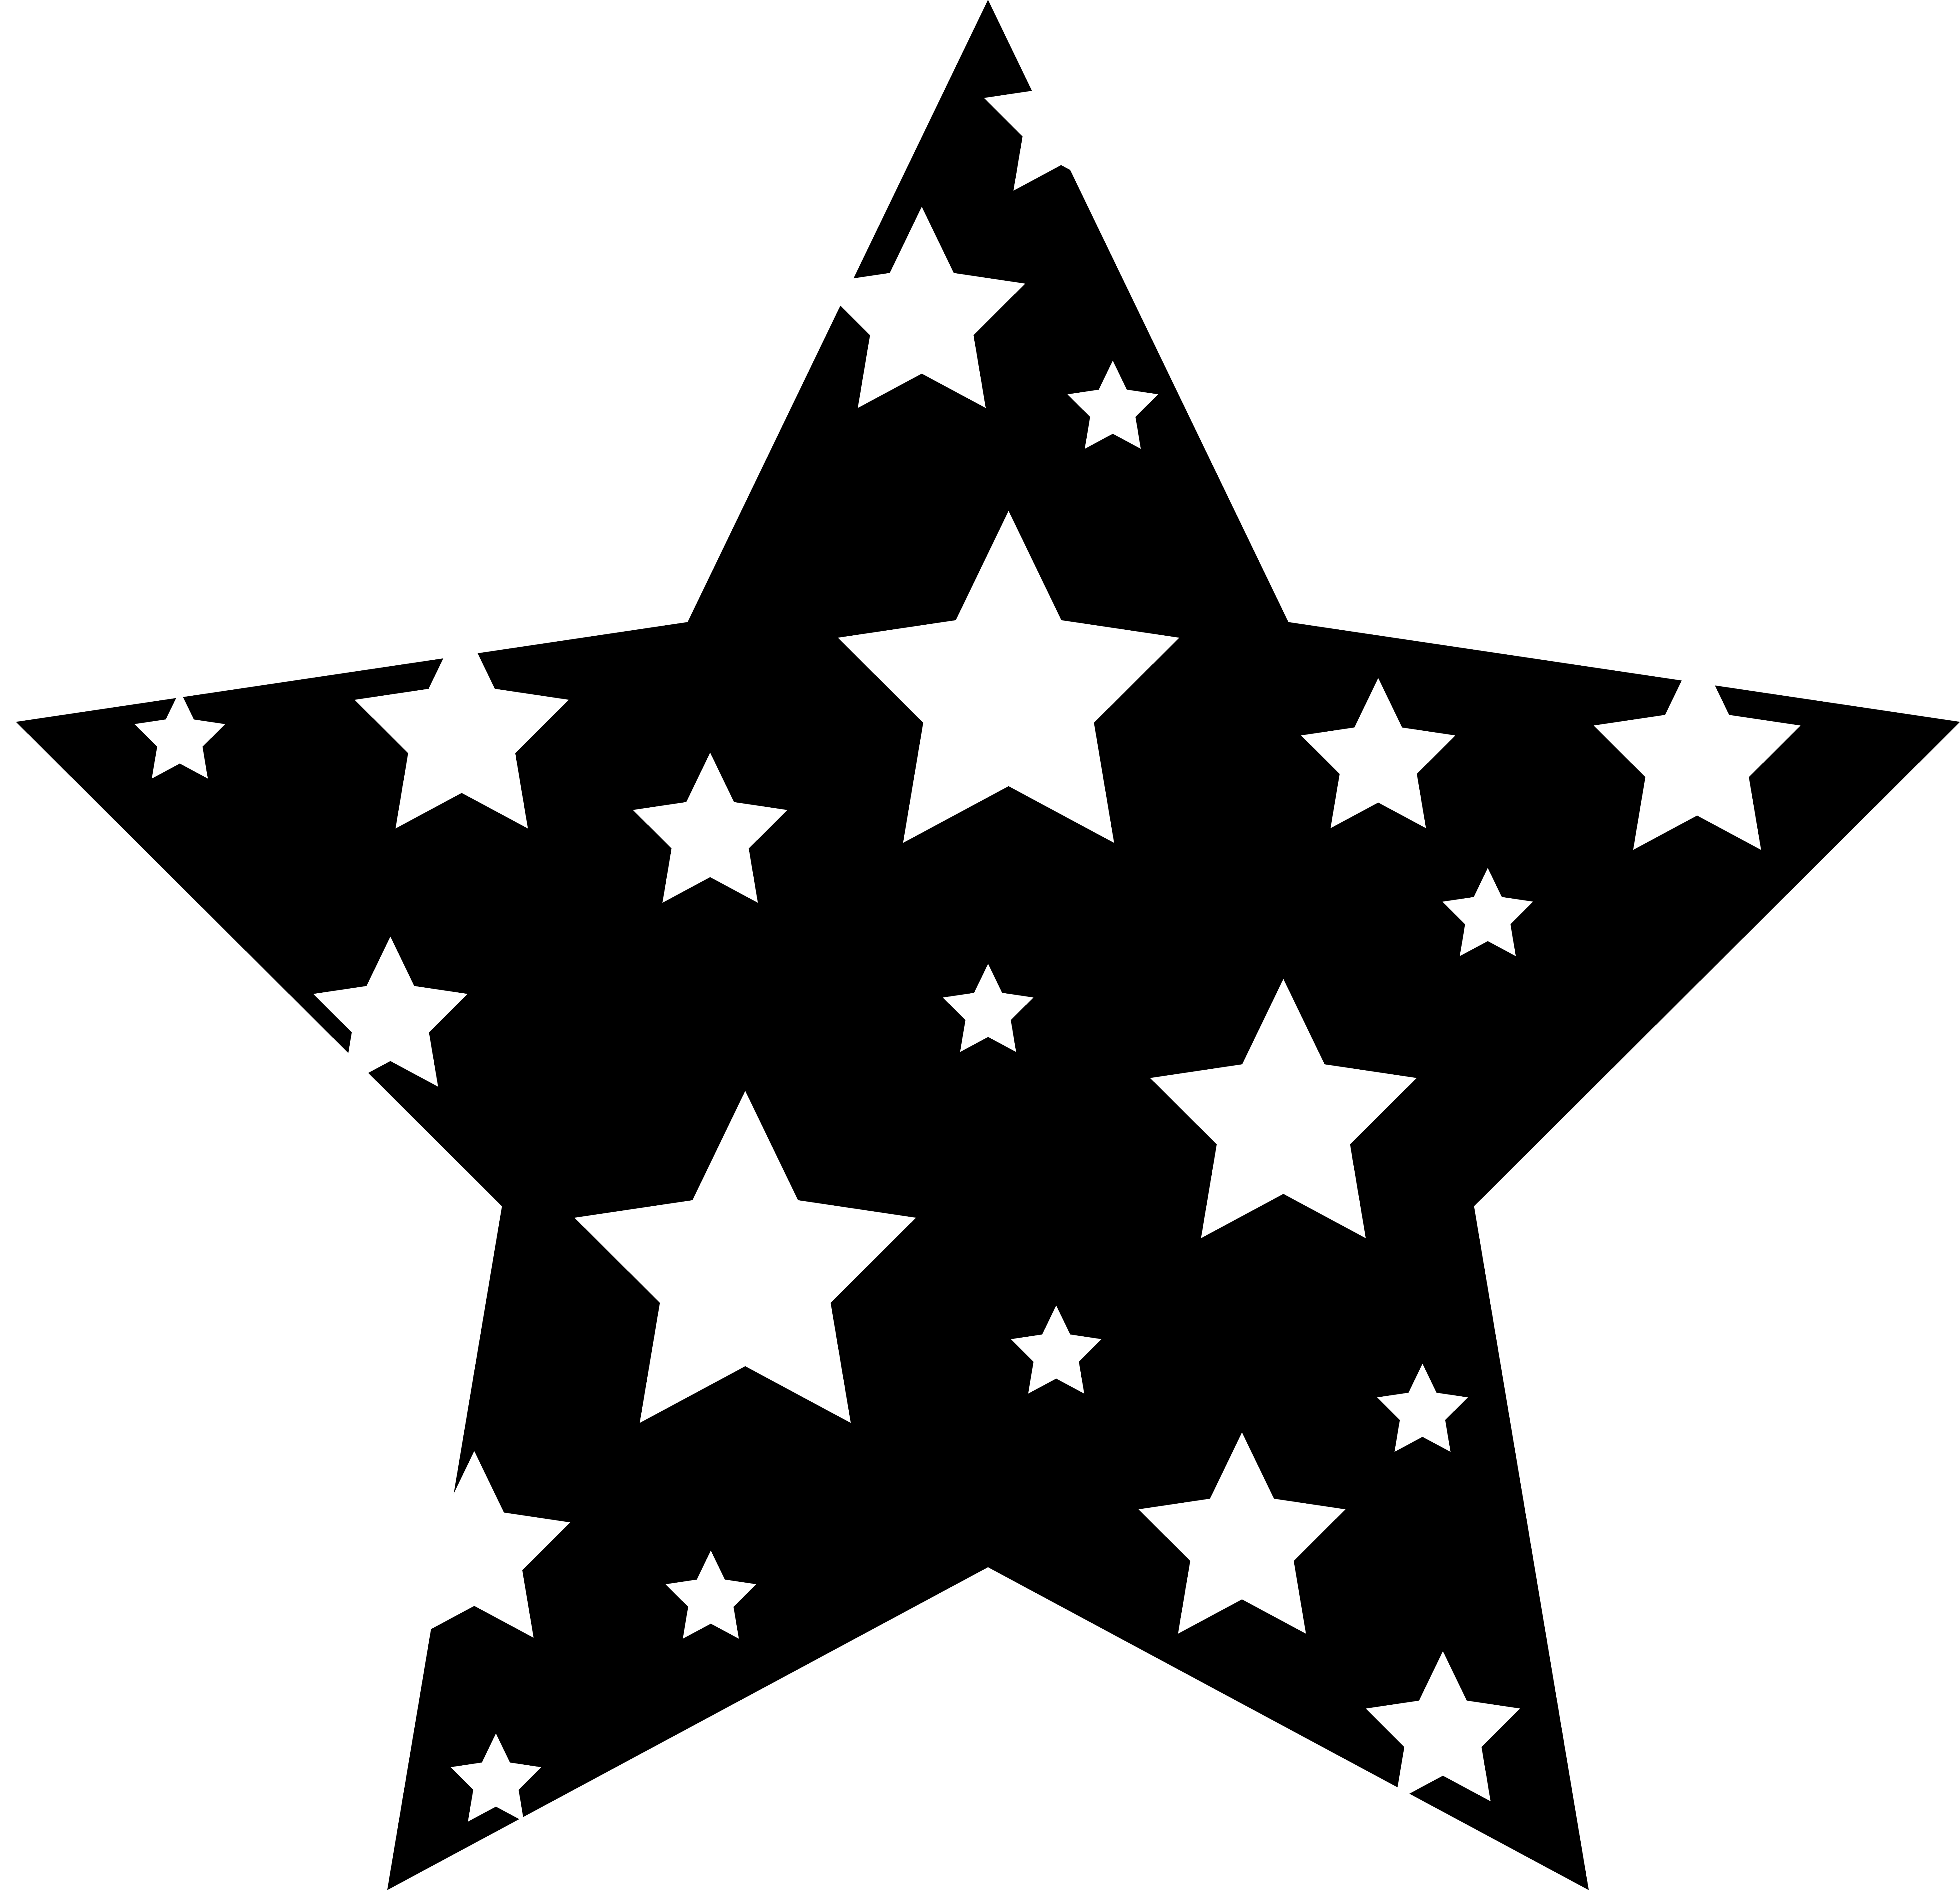 Free Black Star Cliparts, Download Free Clip Art, Free Clip Art on.